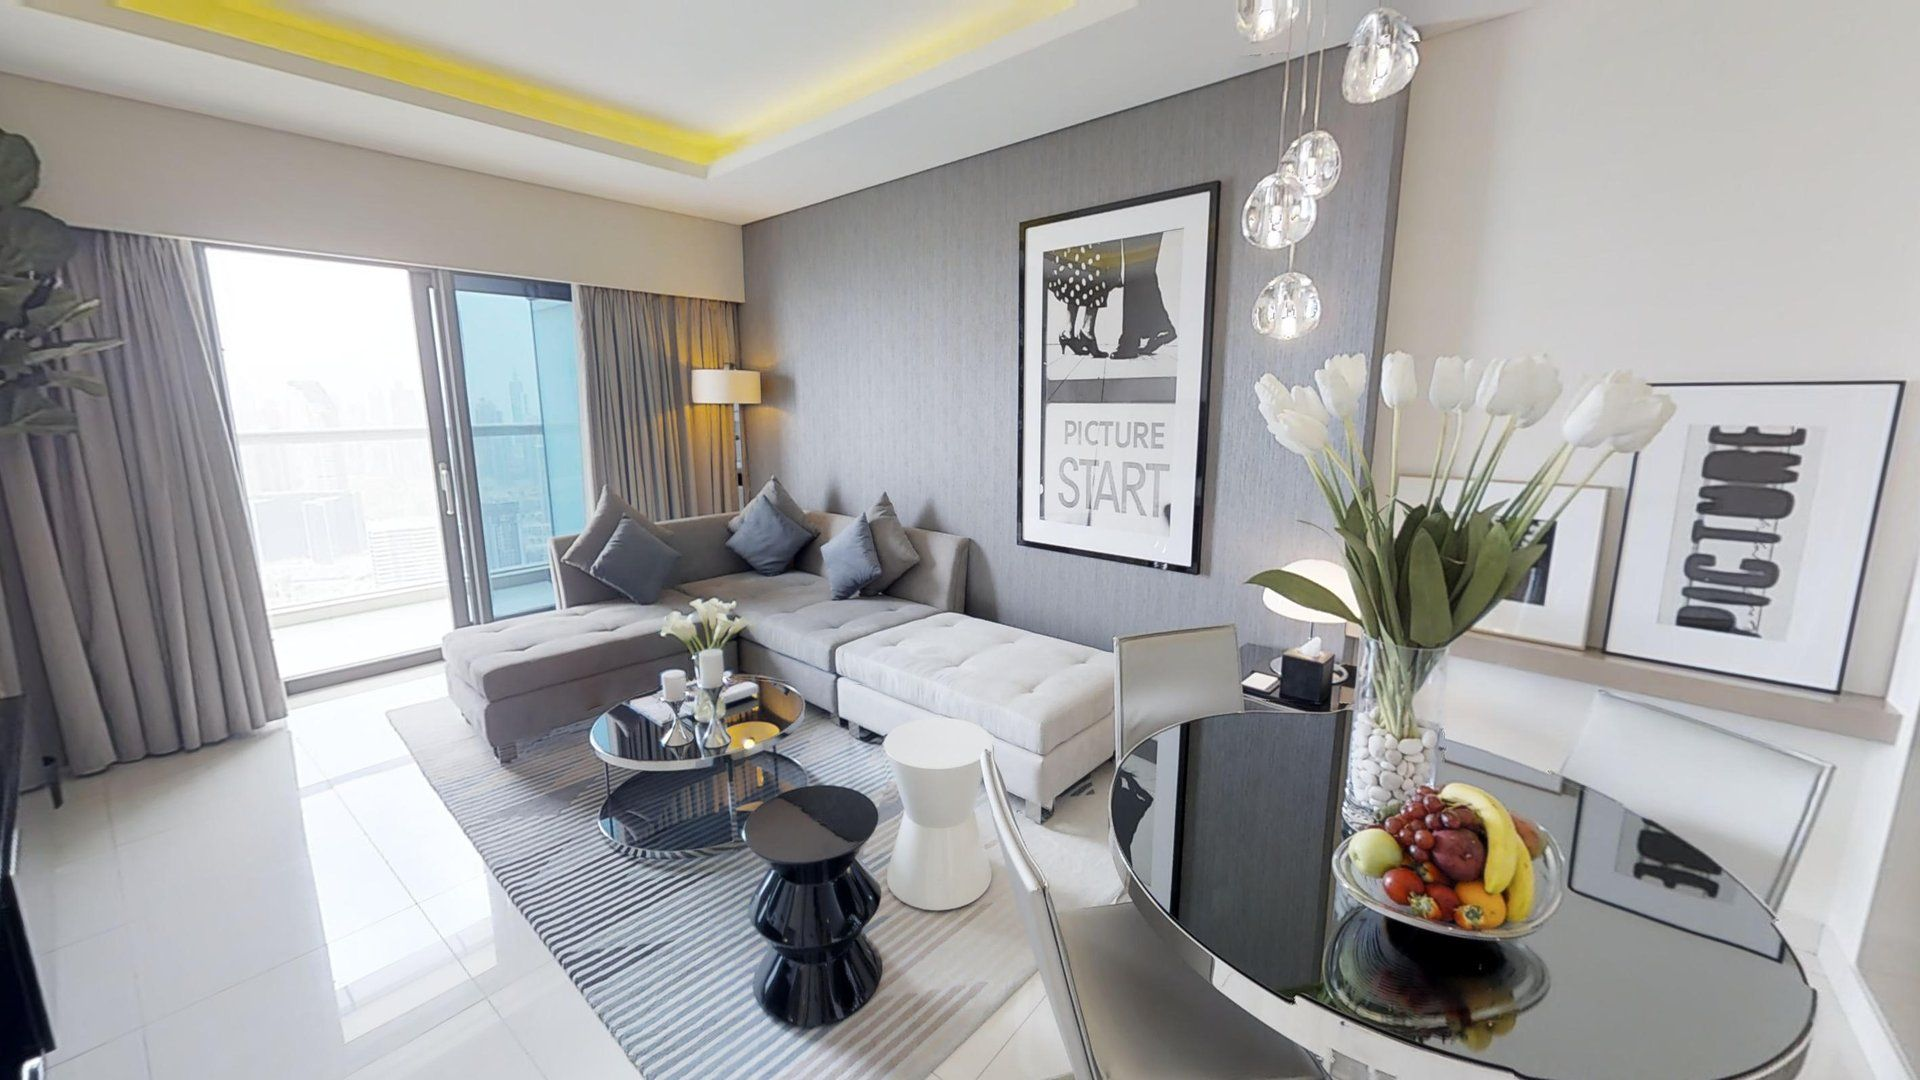 Welcome To This One Bedroom Hotel Apartment Inspired By Hollywood